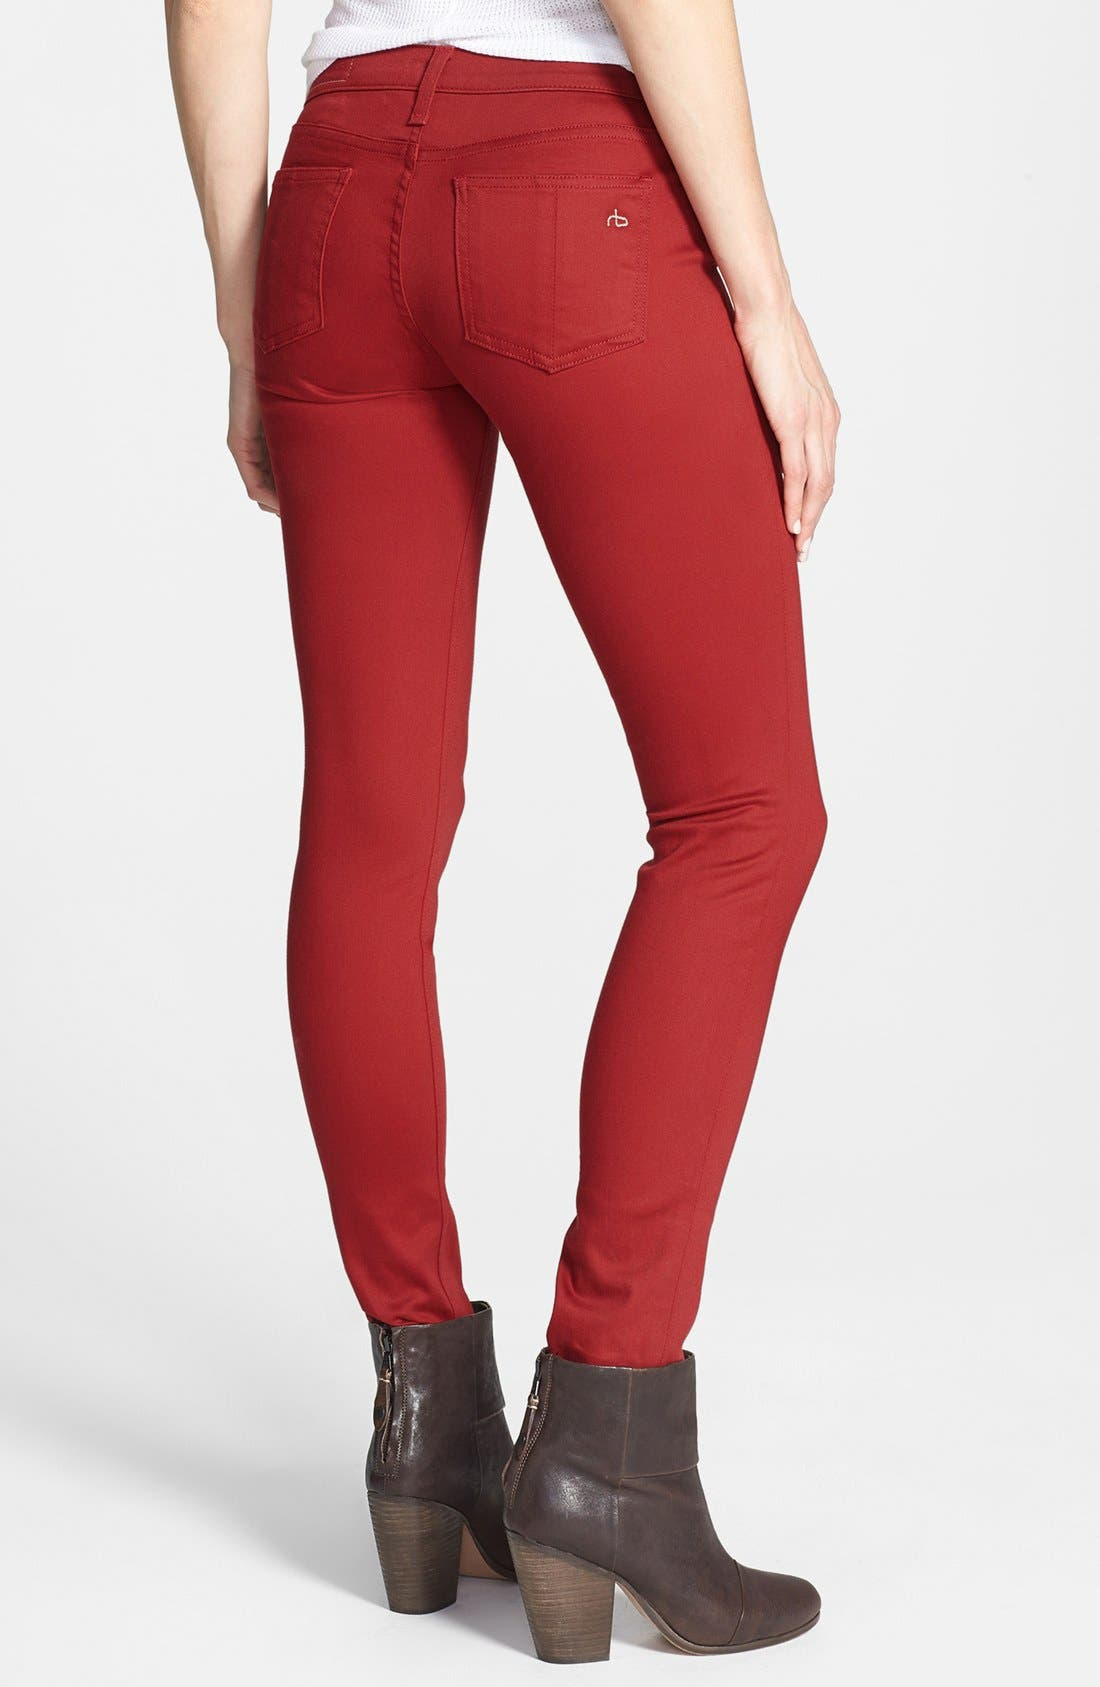 Alternate Image 2  - rag & bone/JEAN 'The Legging' Sateen Skinny Jeans (Red Sateen)